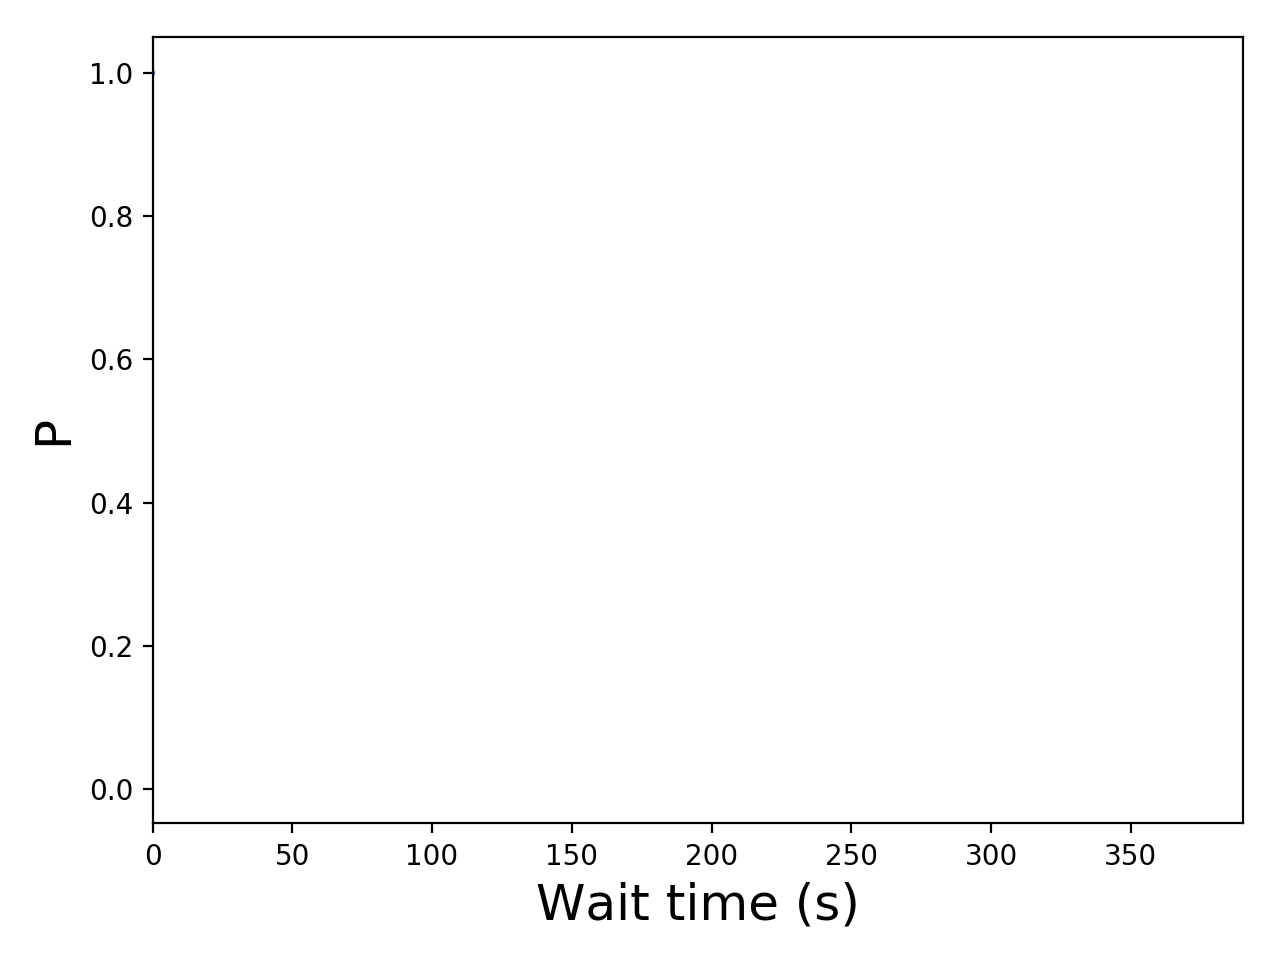 Task wait time CDF graph for the askalon-new_ee21 trace.